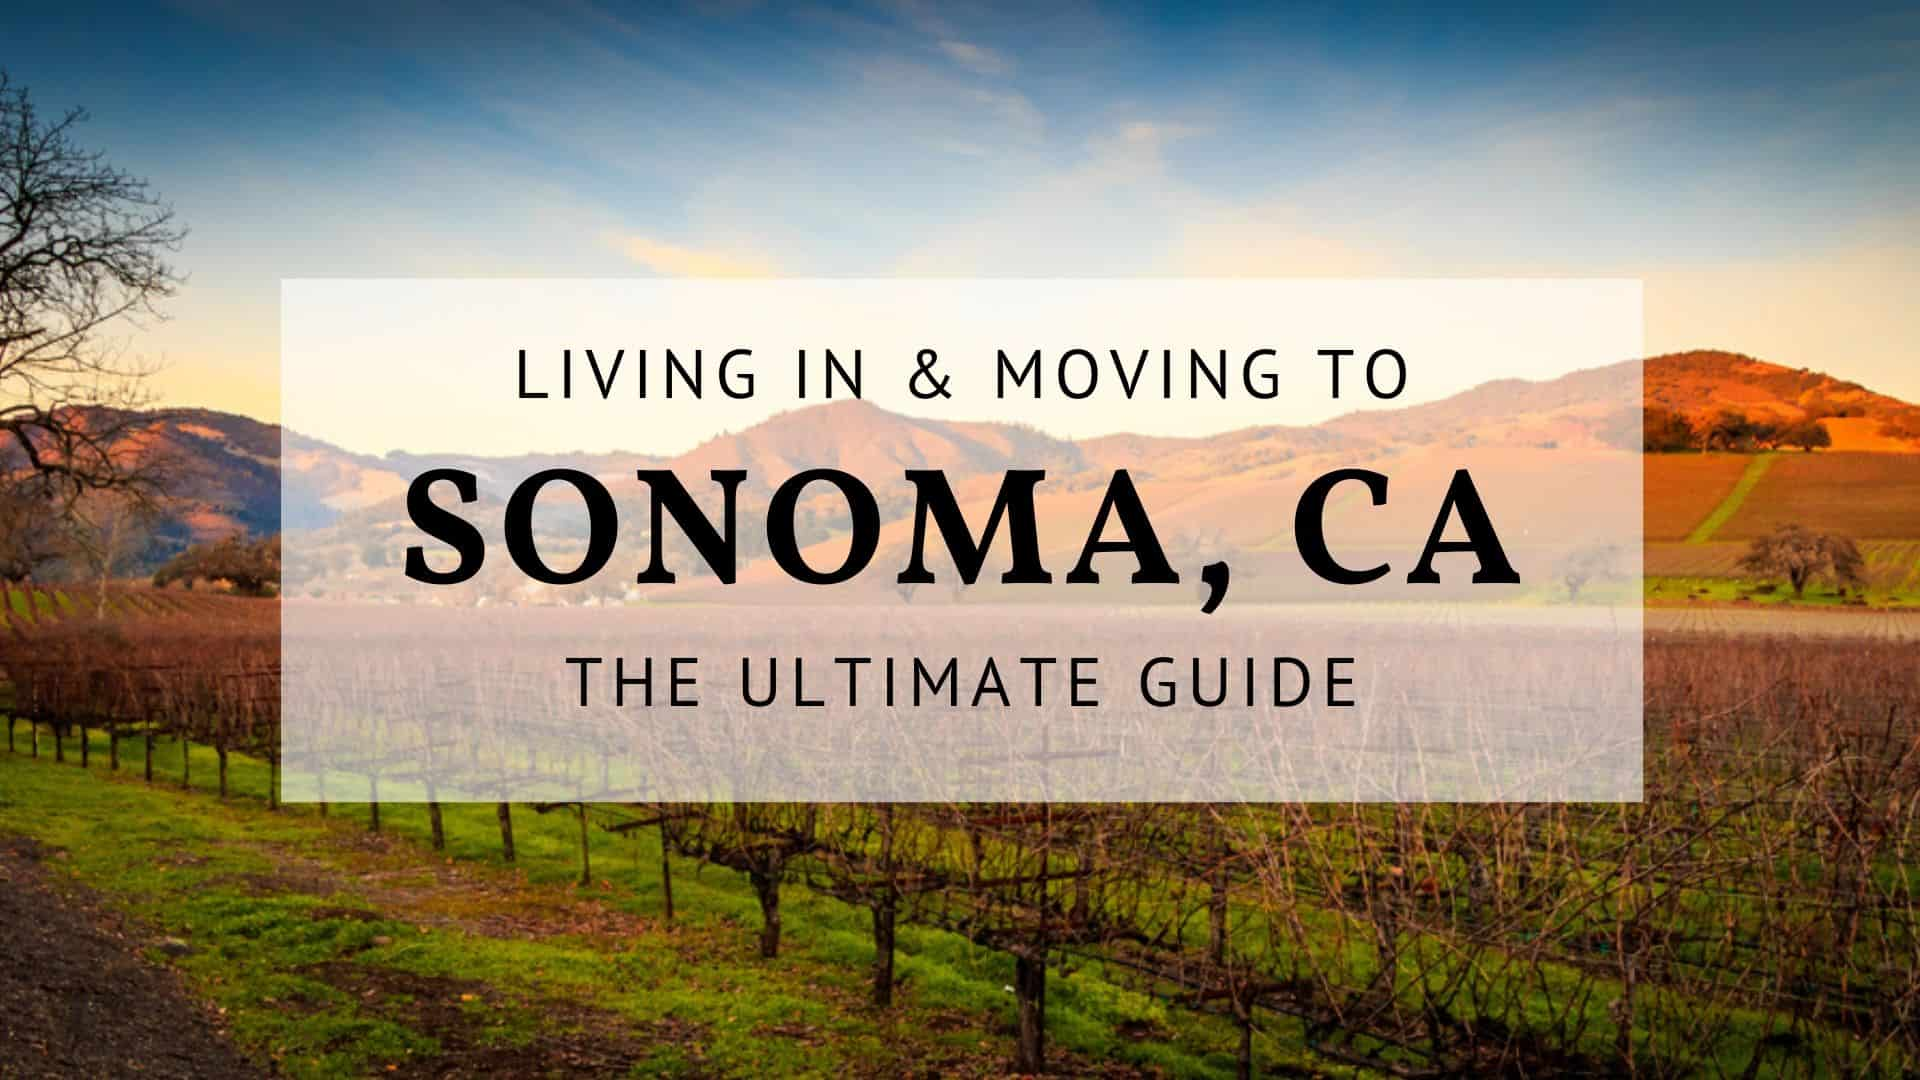 Living in Sonoma CA